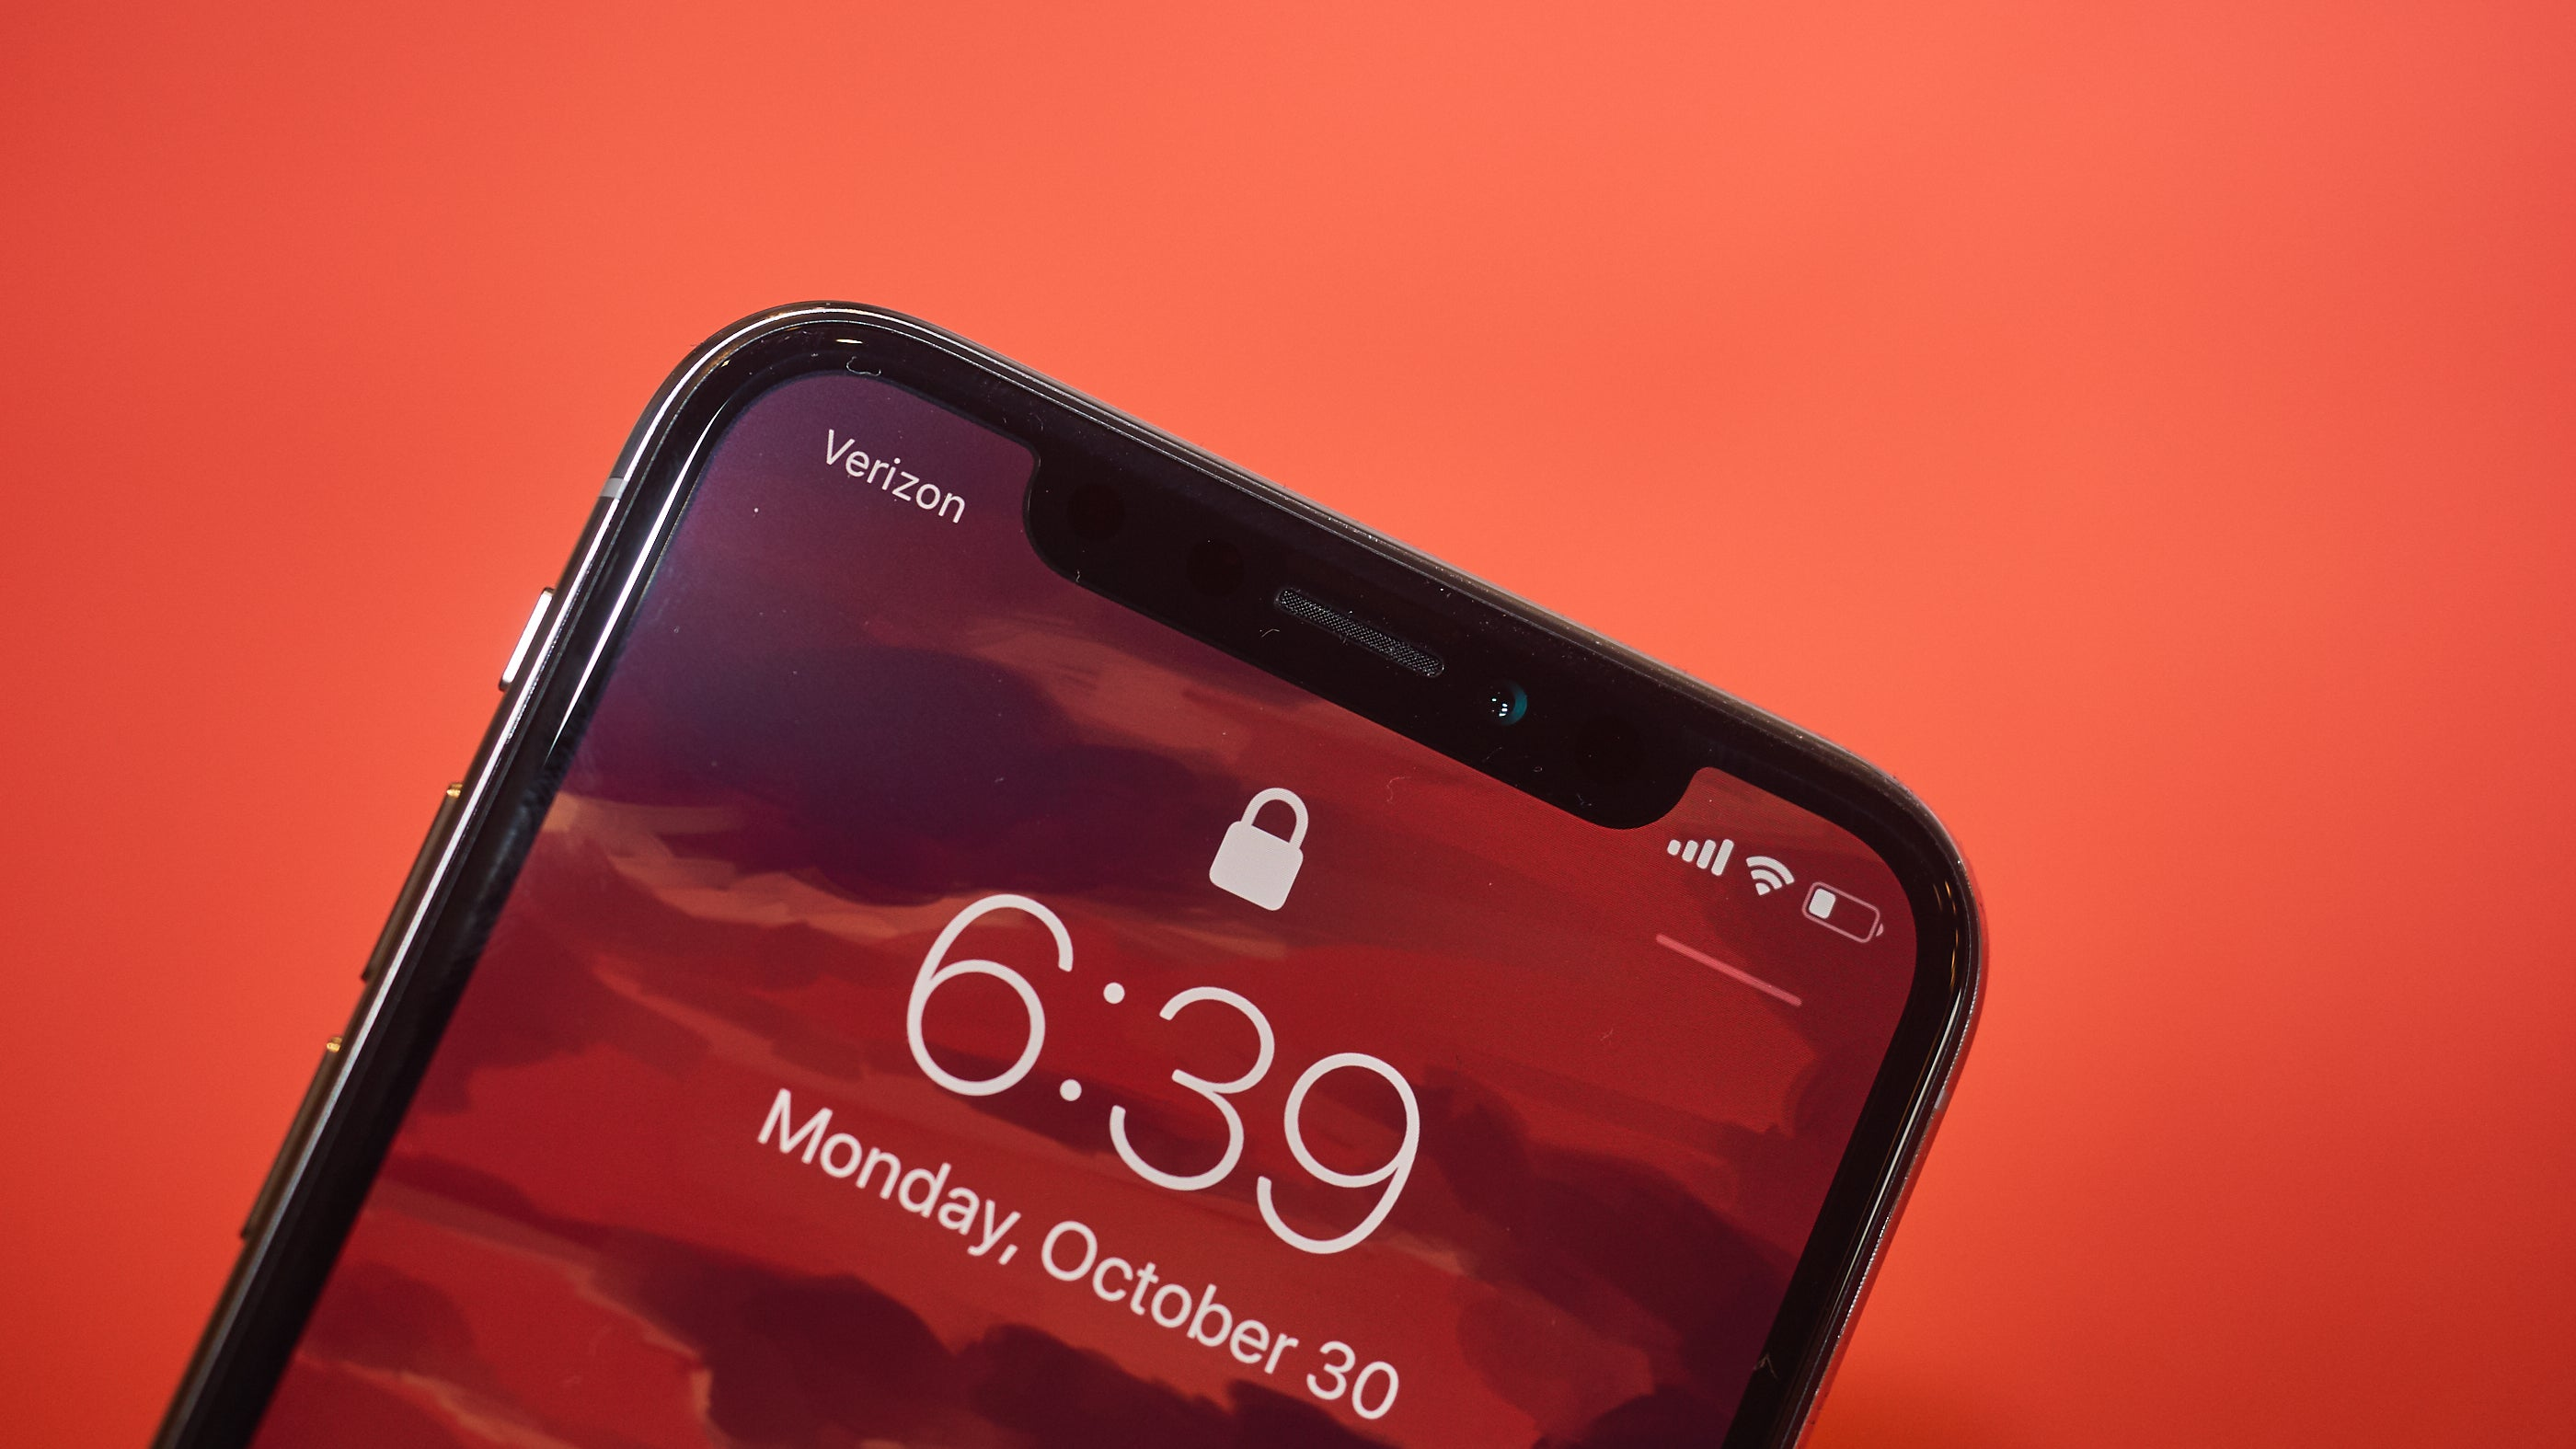 Apple's iPhone X Lineup Will Continue To Grow In 2018